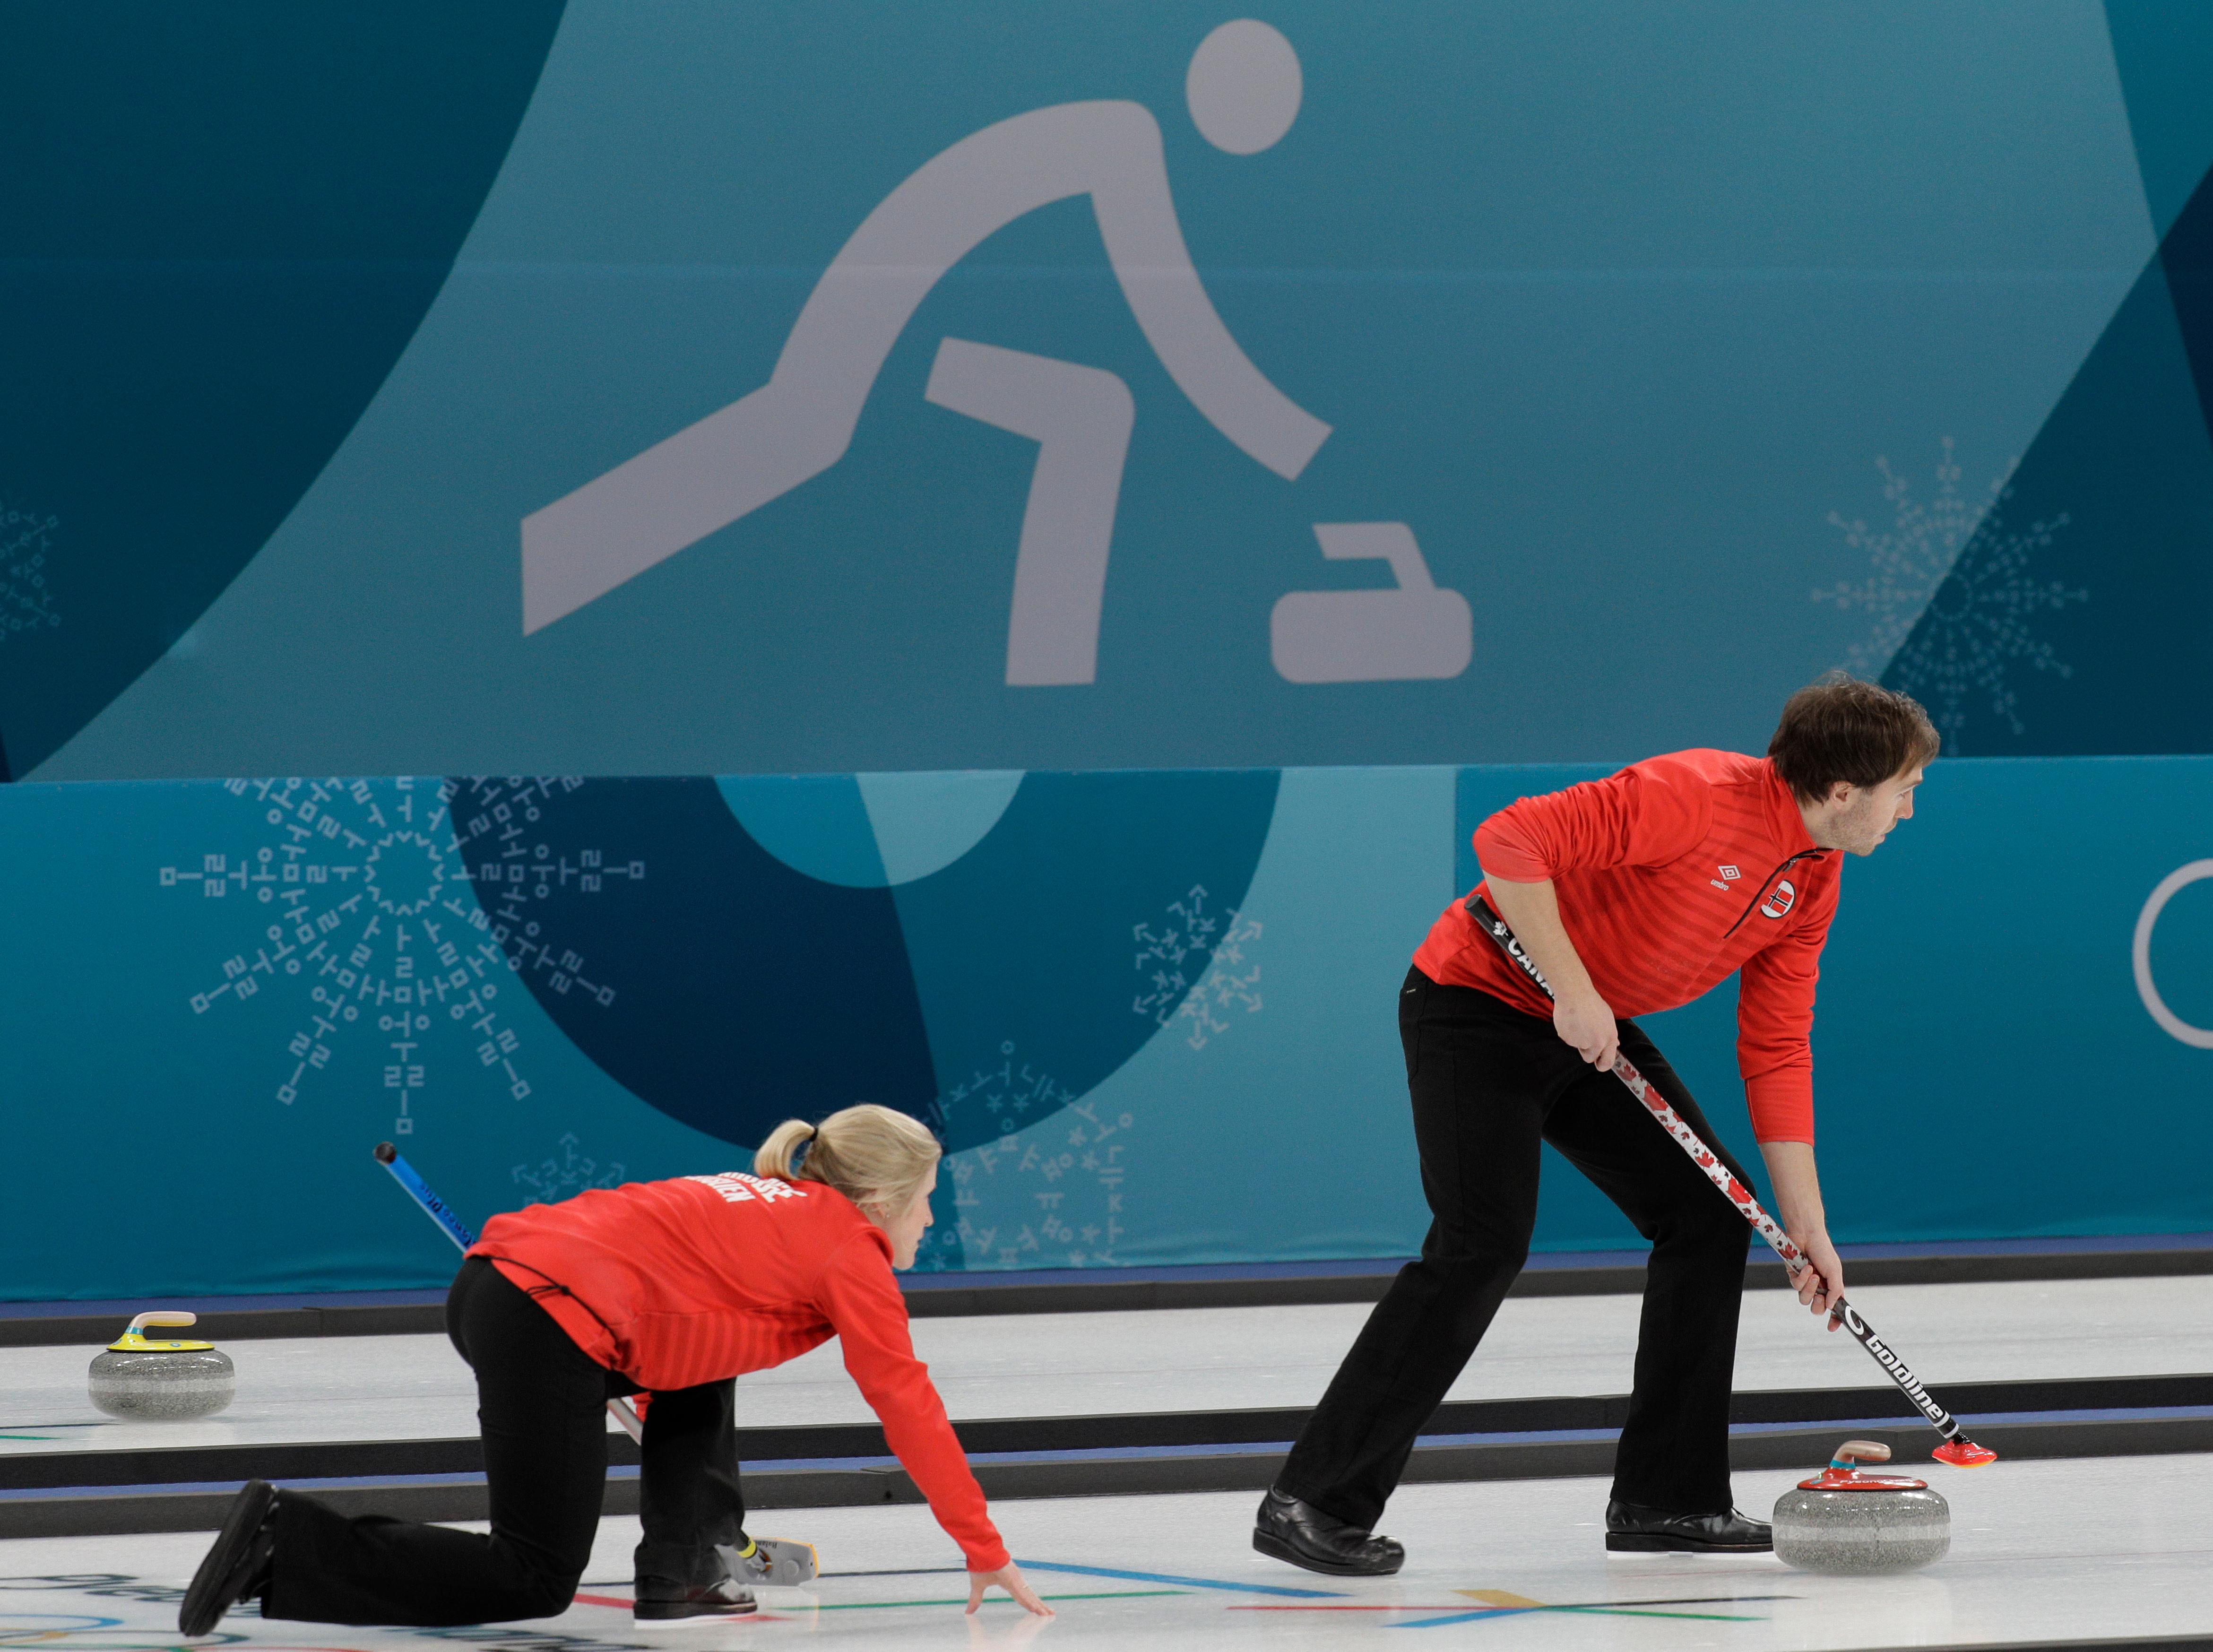 Norway's Kristin Skaslien, left, the Curling mixed doubles training session ahead of the 2018 Winter Olympics in Gangneung, South Korea, Wednesday, Feb. 7, 2018. (AP Photo/Aaron Favila)